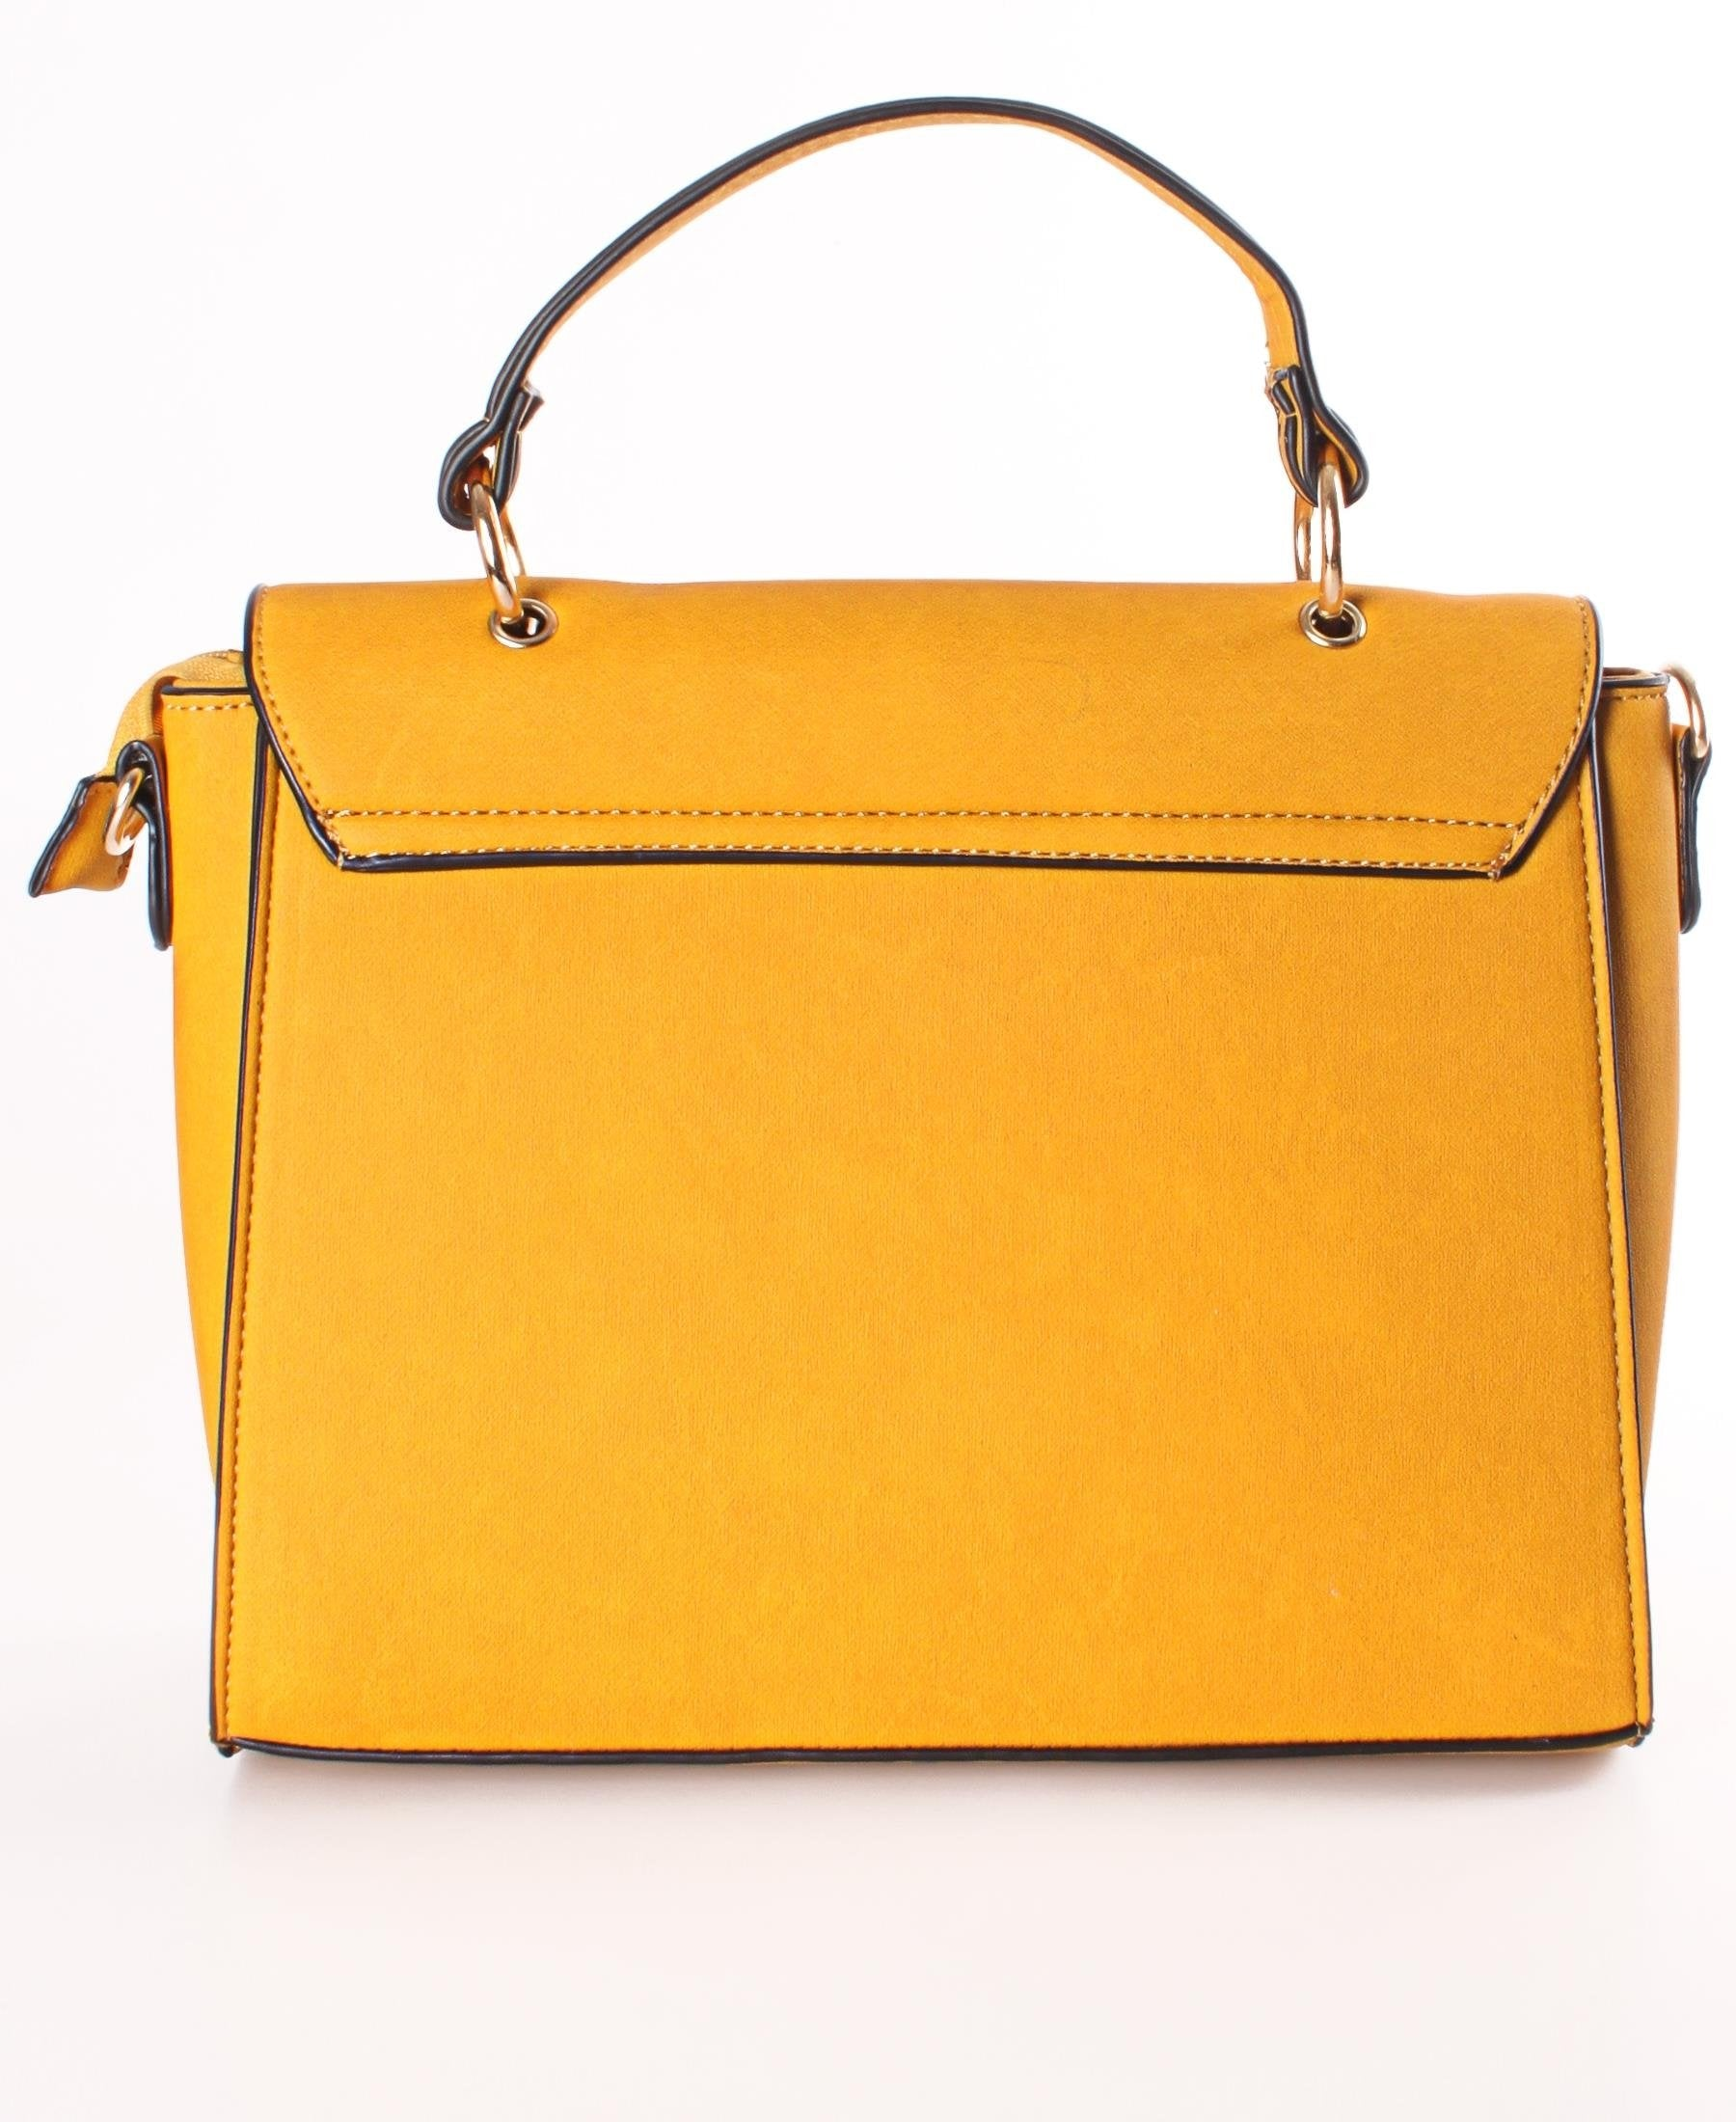 Satchel Bag - Mustard